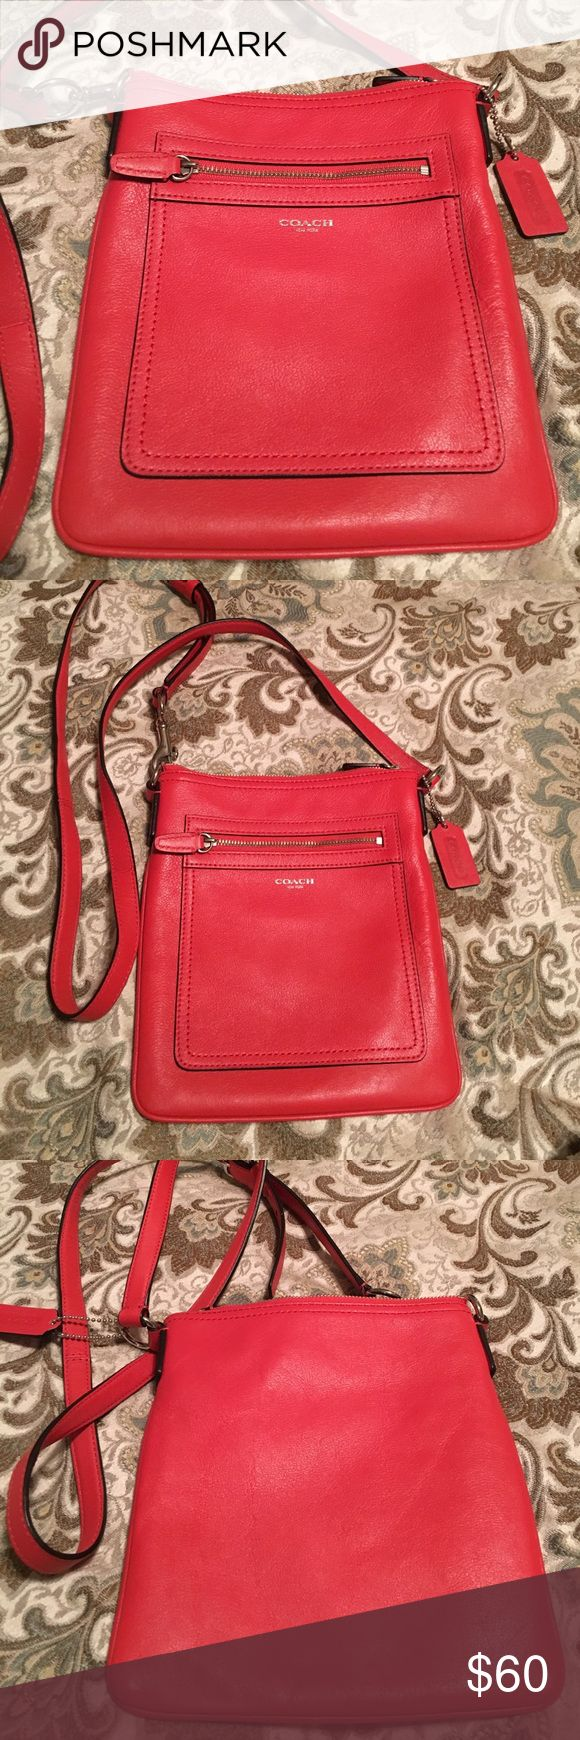 """Coach Legacy Crossbody Beautiful coral red color and LIKE NEW inside and out!! Smoke free home. Adjustable strap, outside zipper pocket. Approx 9"""" h x 8""""'w. Coach Bags Crossbody Bags"""